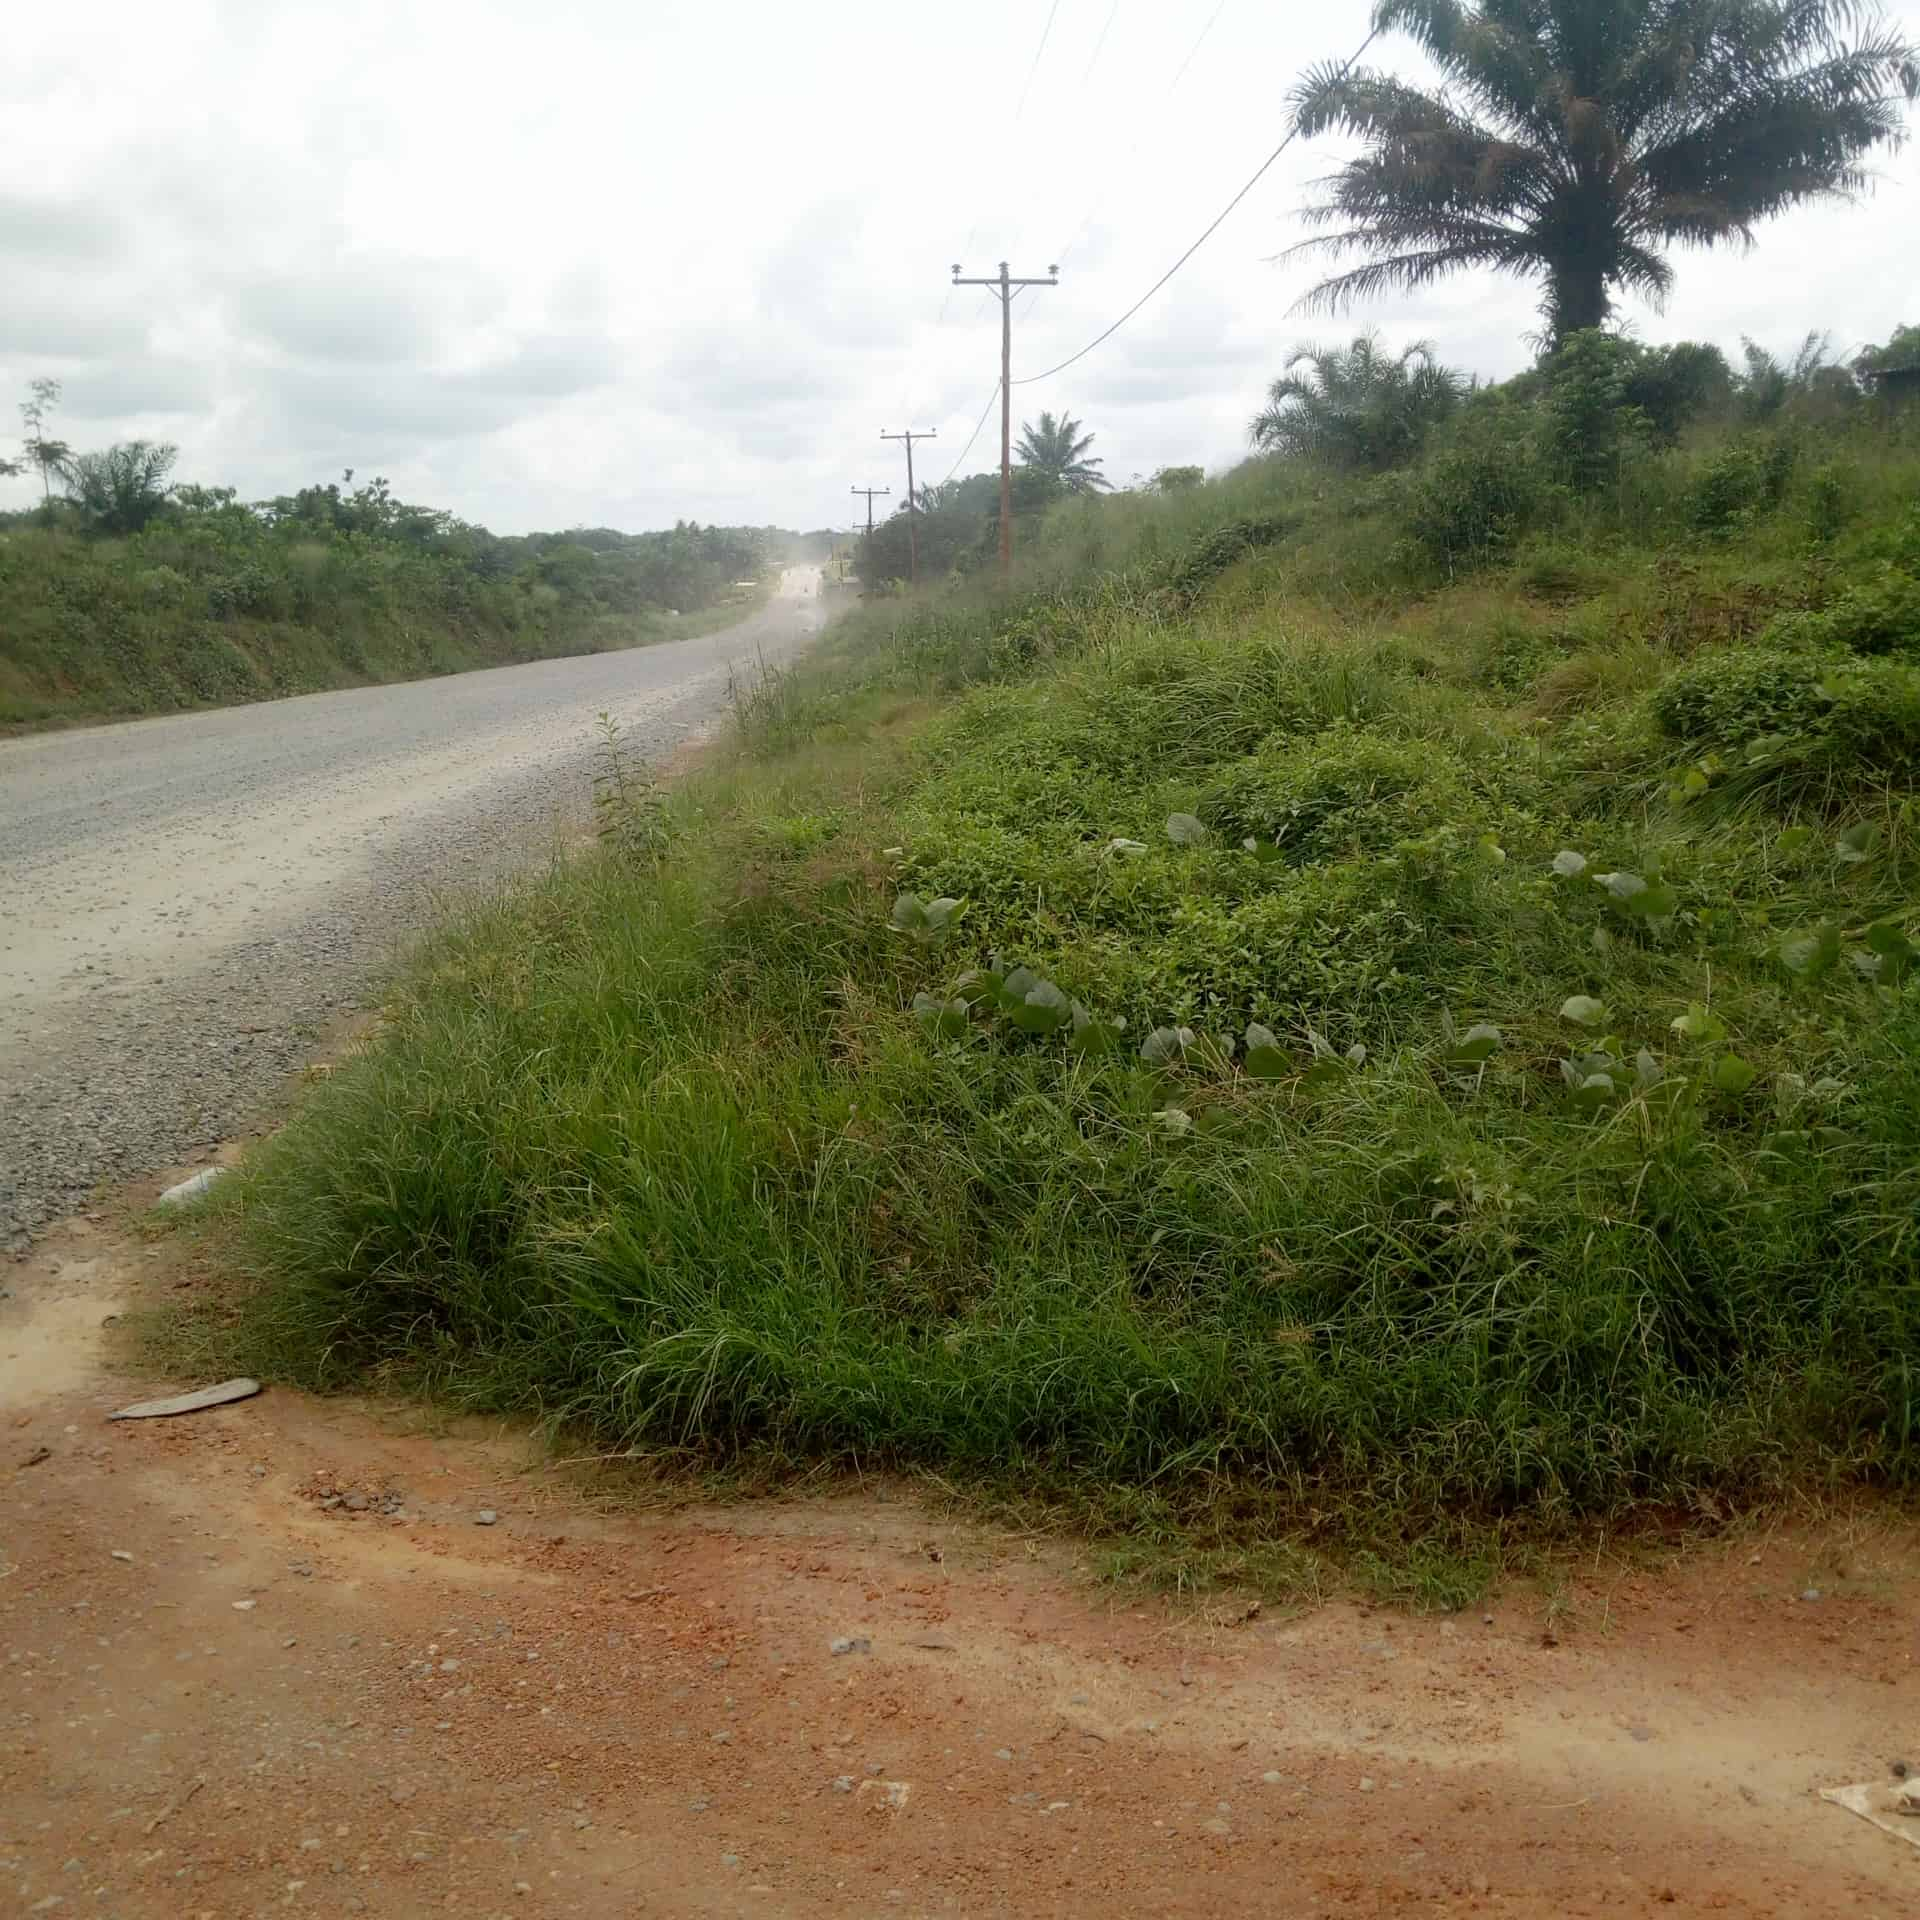 Land for sale at Douala, PK 25, Pk25 pk26 - 40000 m2 - 50 000 000 FCFA